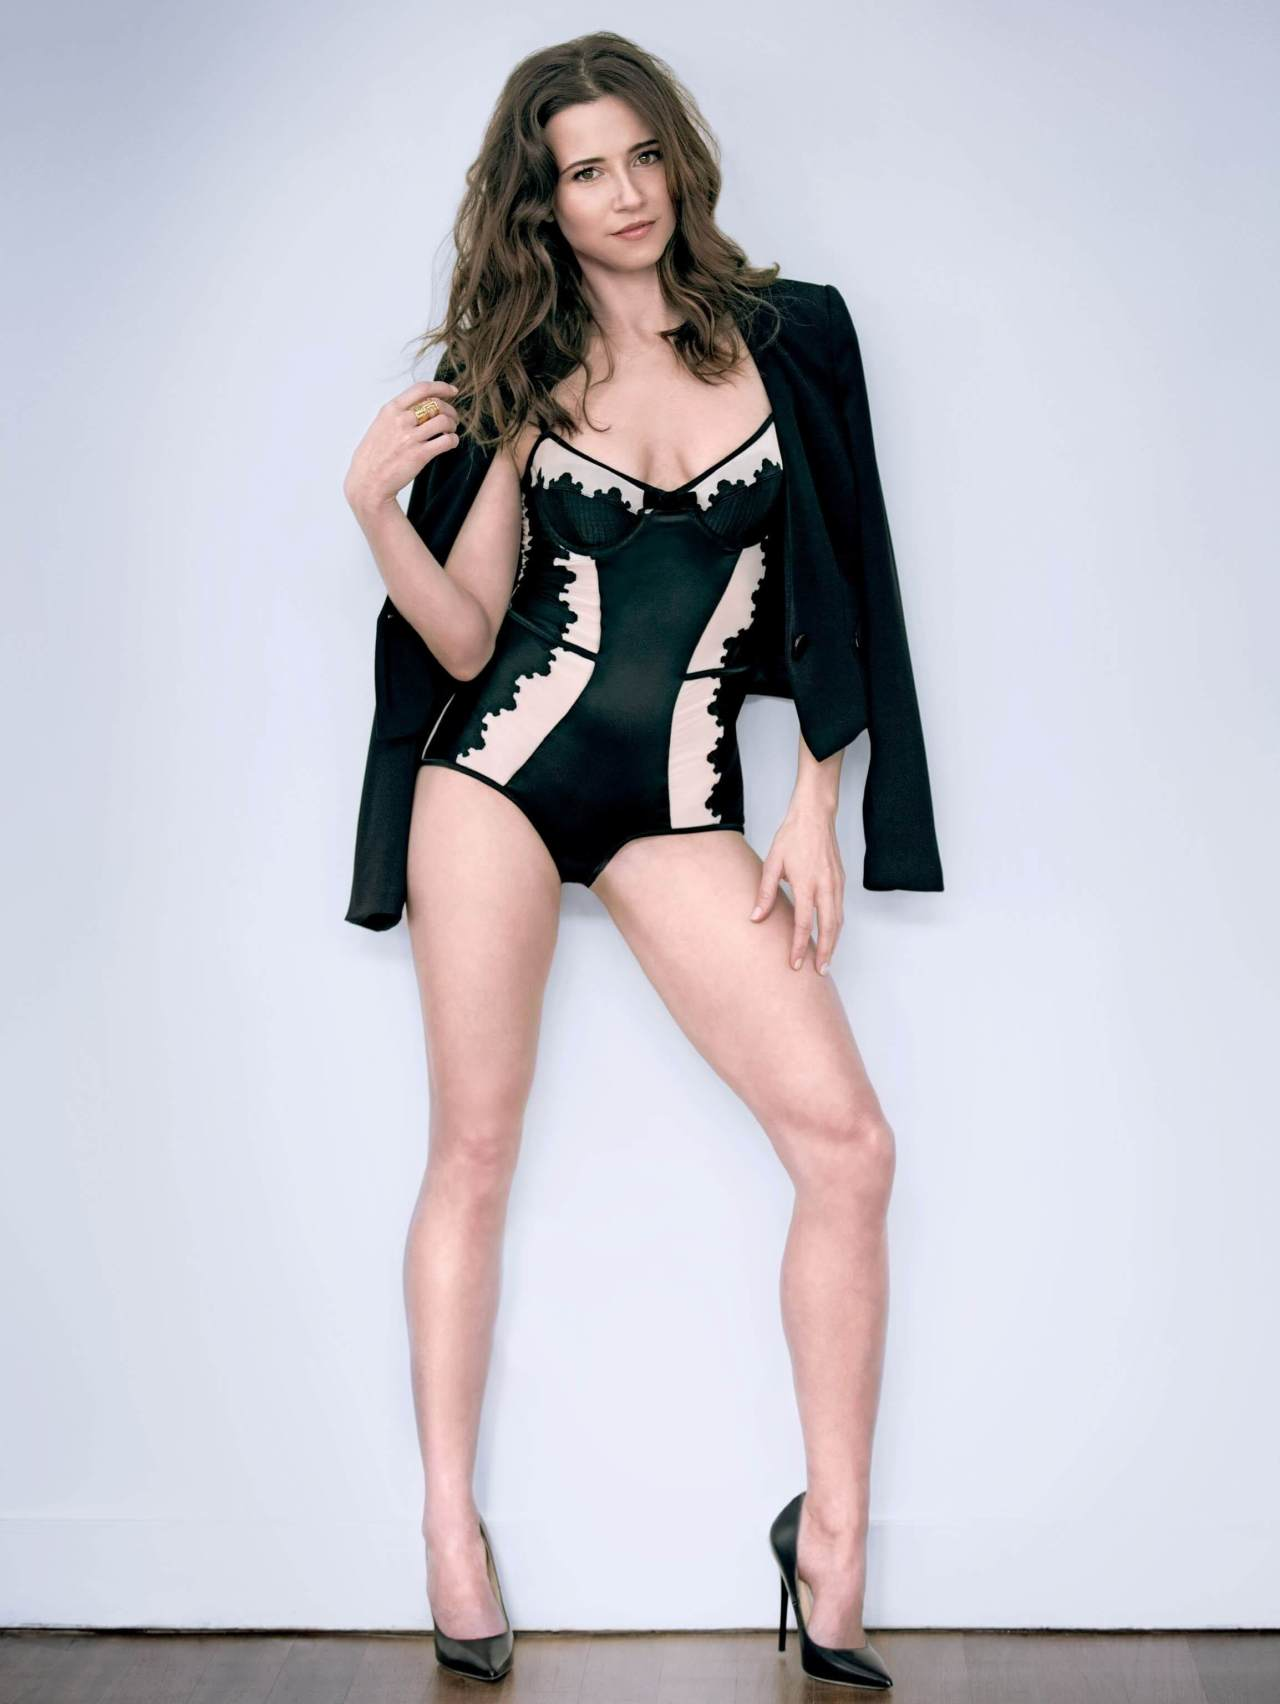 49 Hottest Linda Cardellini Bikini Pictures Will Hypnotise You With Her Exquisite Body | Best Of ...